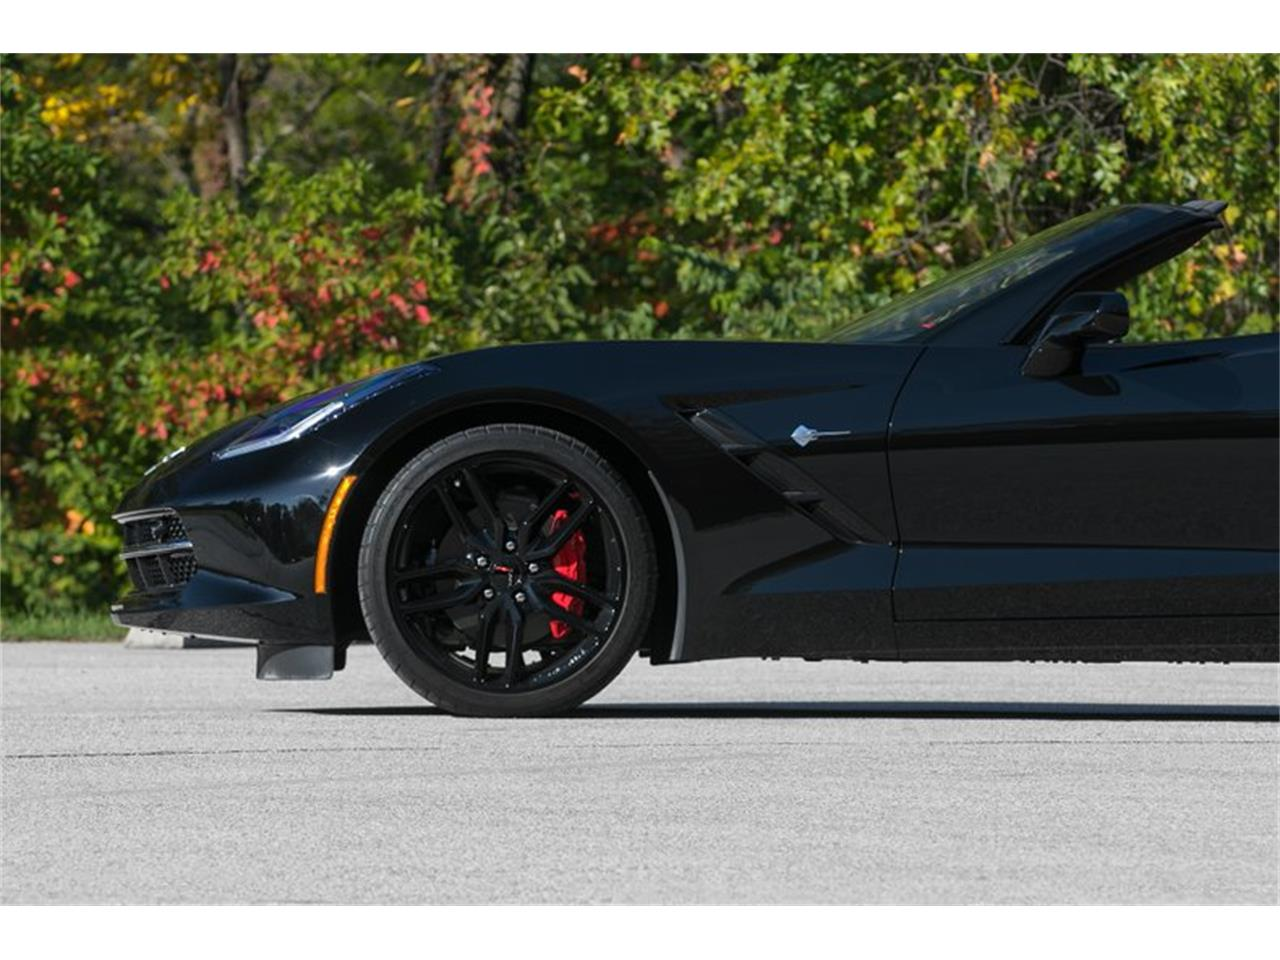 2016 Chevrolet Corvette for sale in St. Charles, MO – photo 4